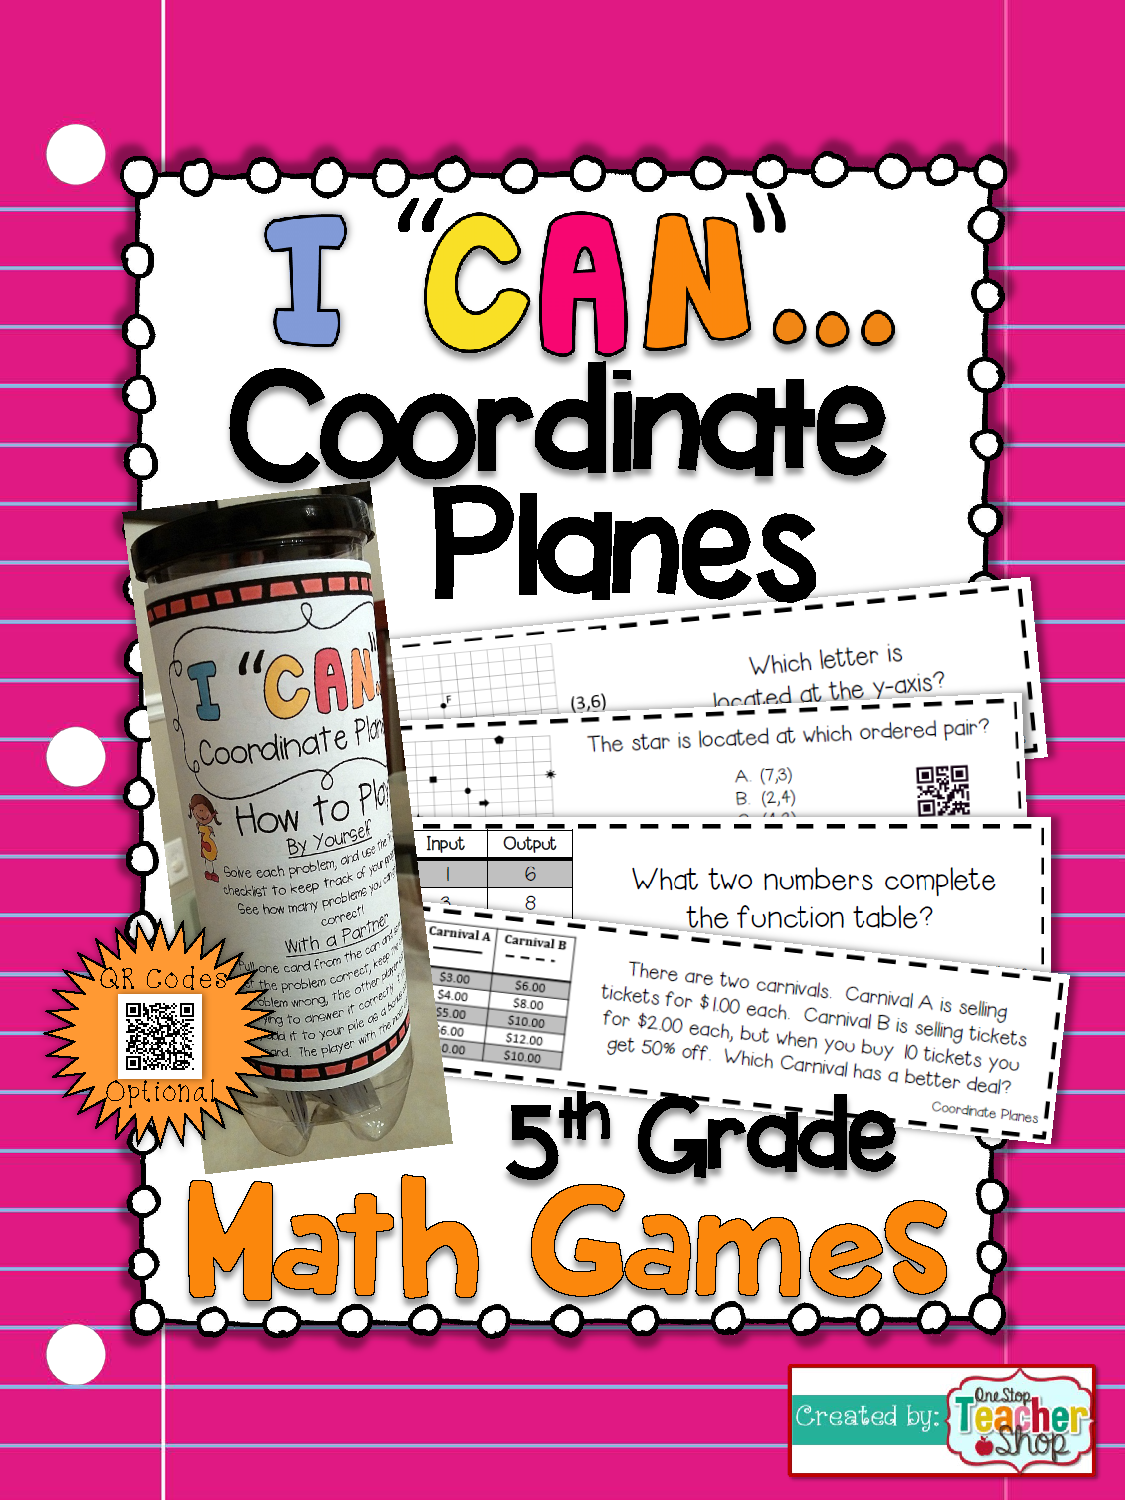 5th Grade Graphing Coordinate Planes Game